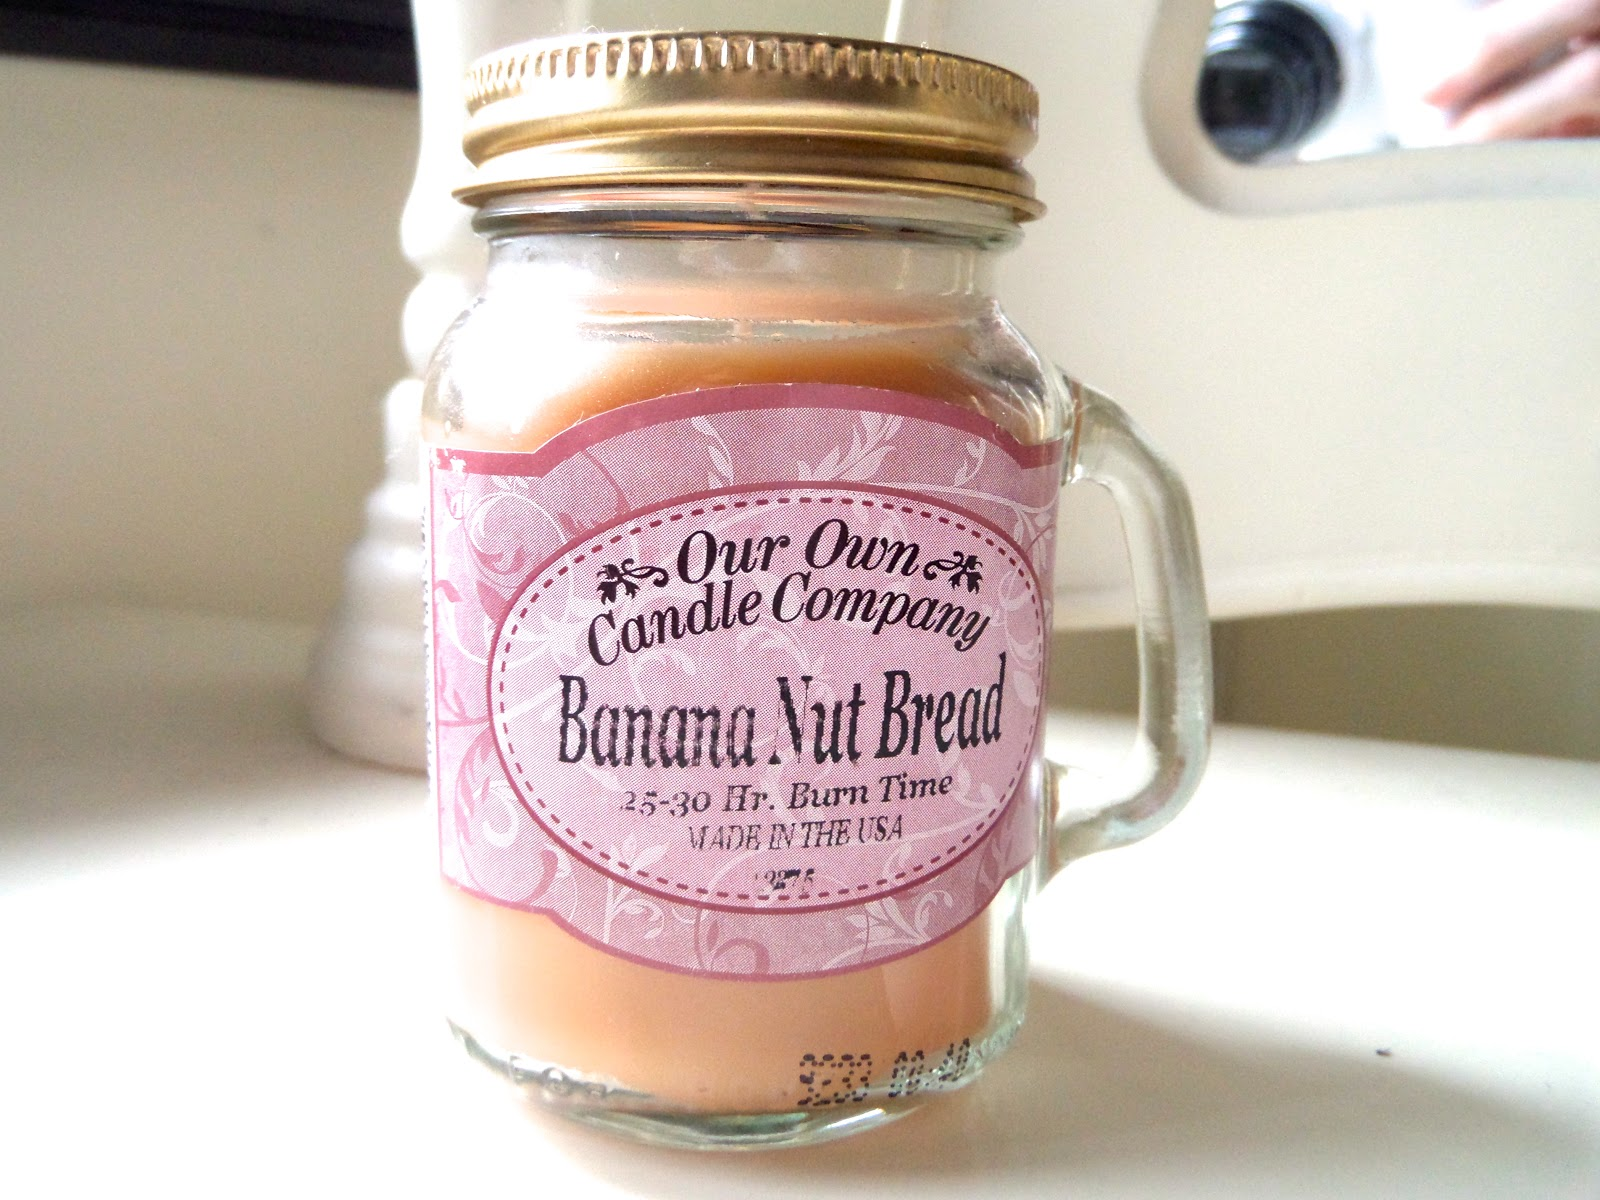 Our Own Candle Company Banana Nut Bread Review